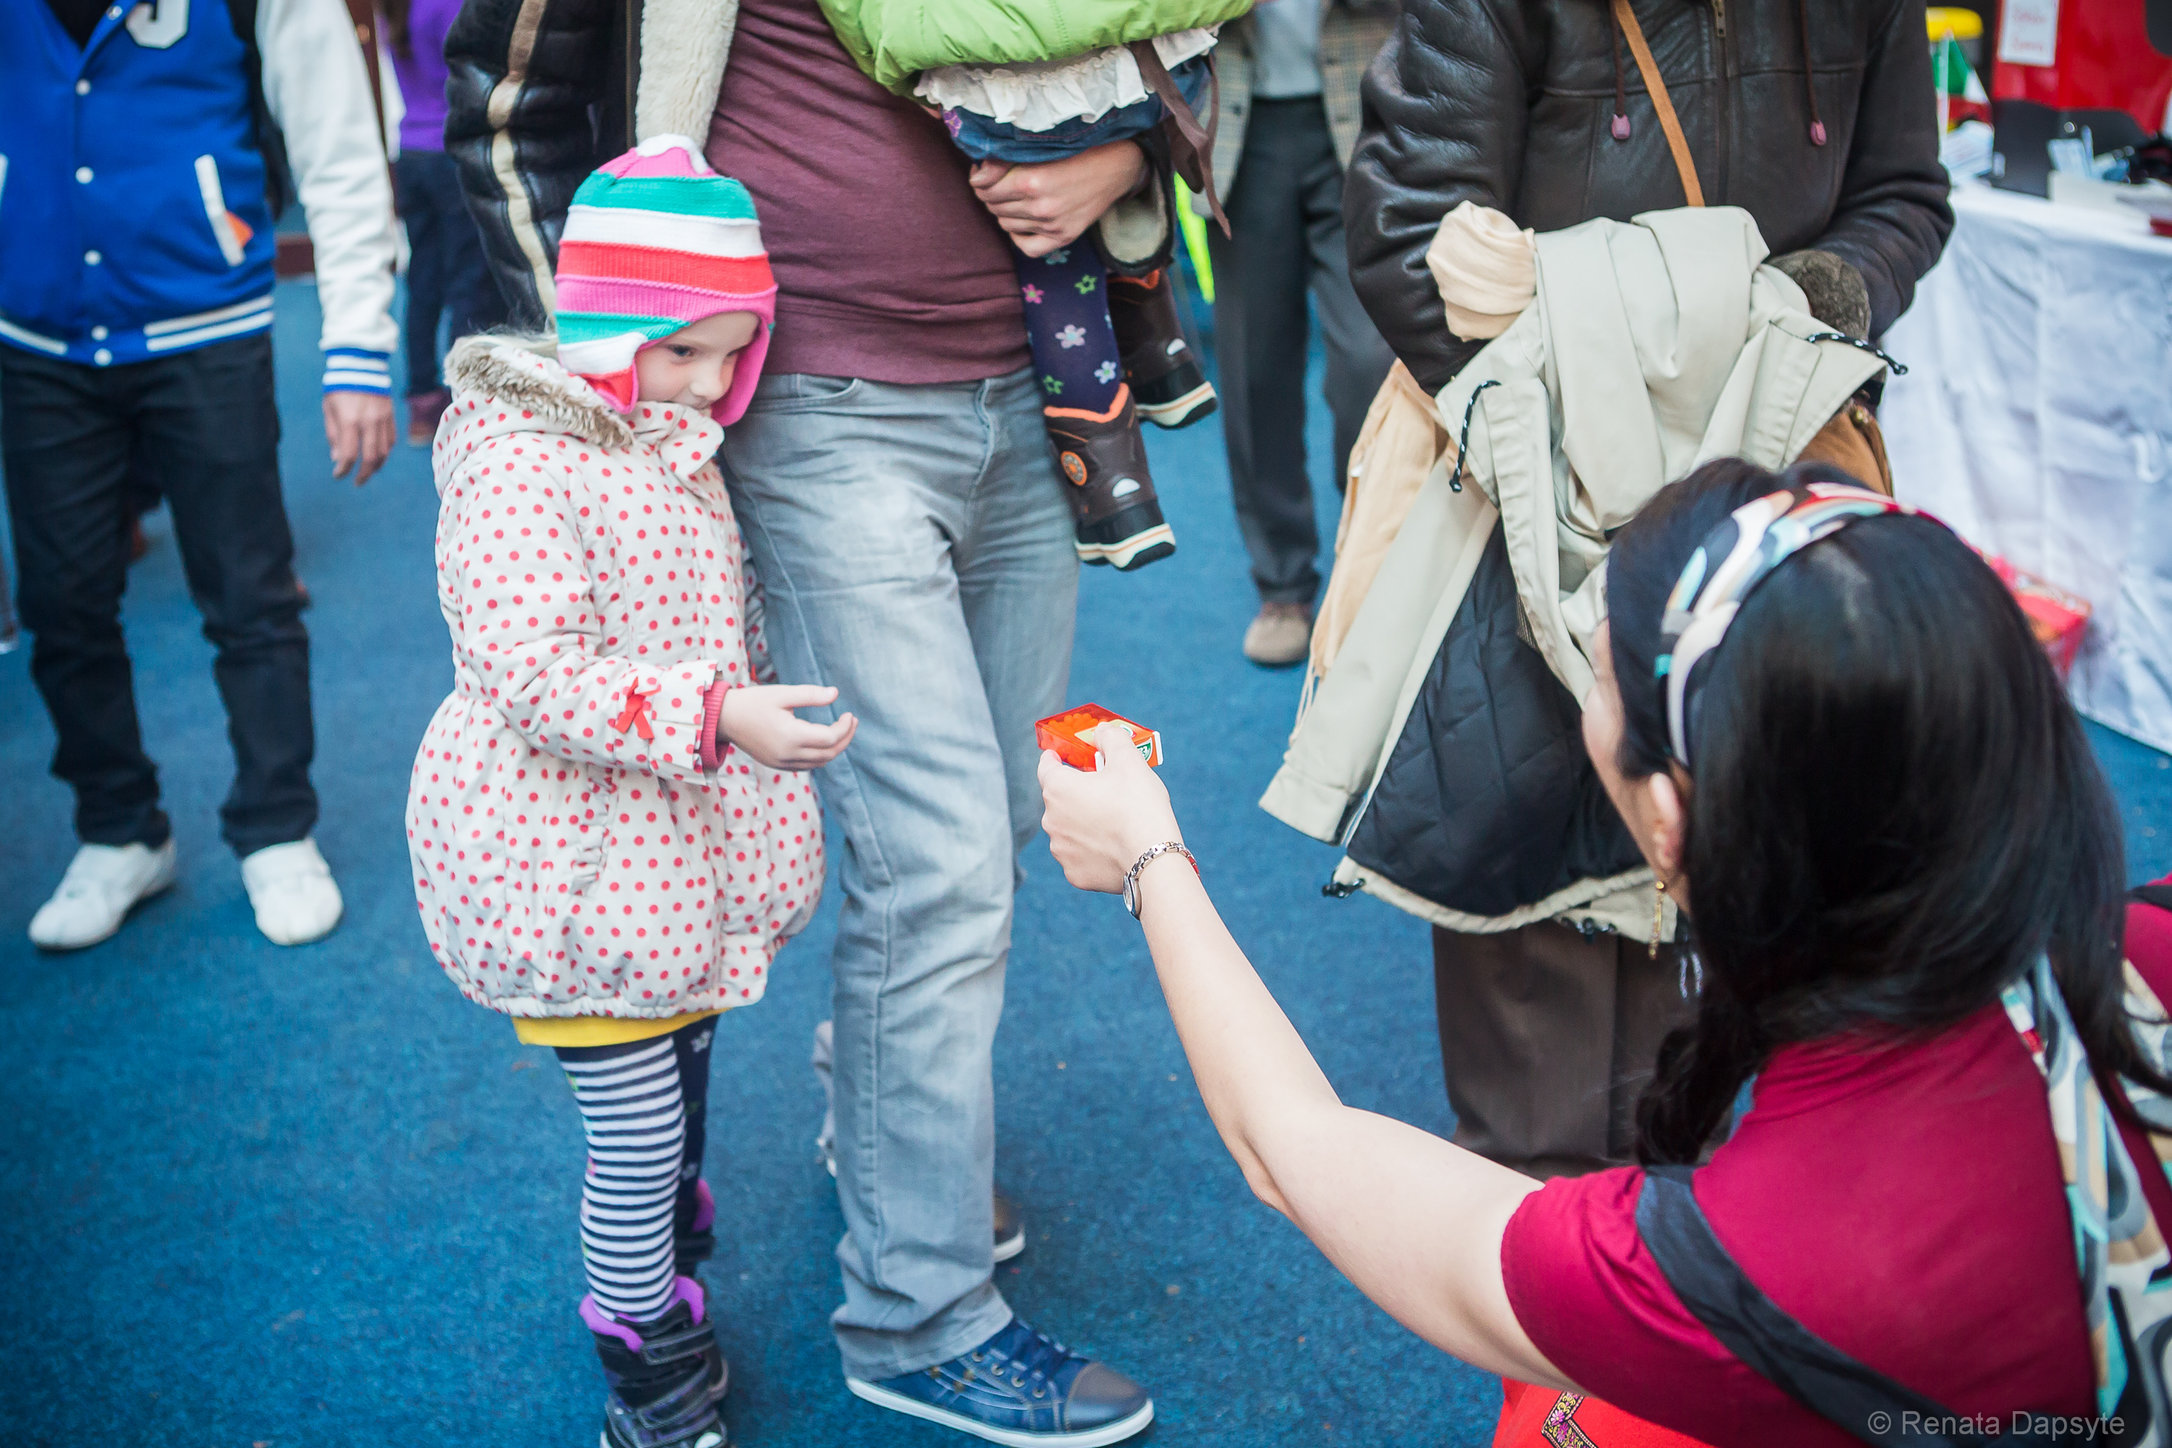 019_International Charity Bazaar Dublin 2013.JPG